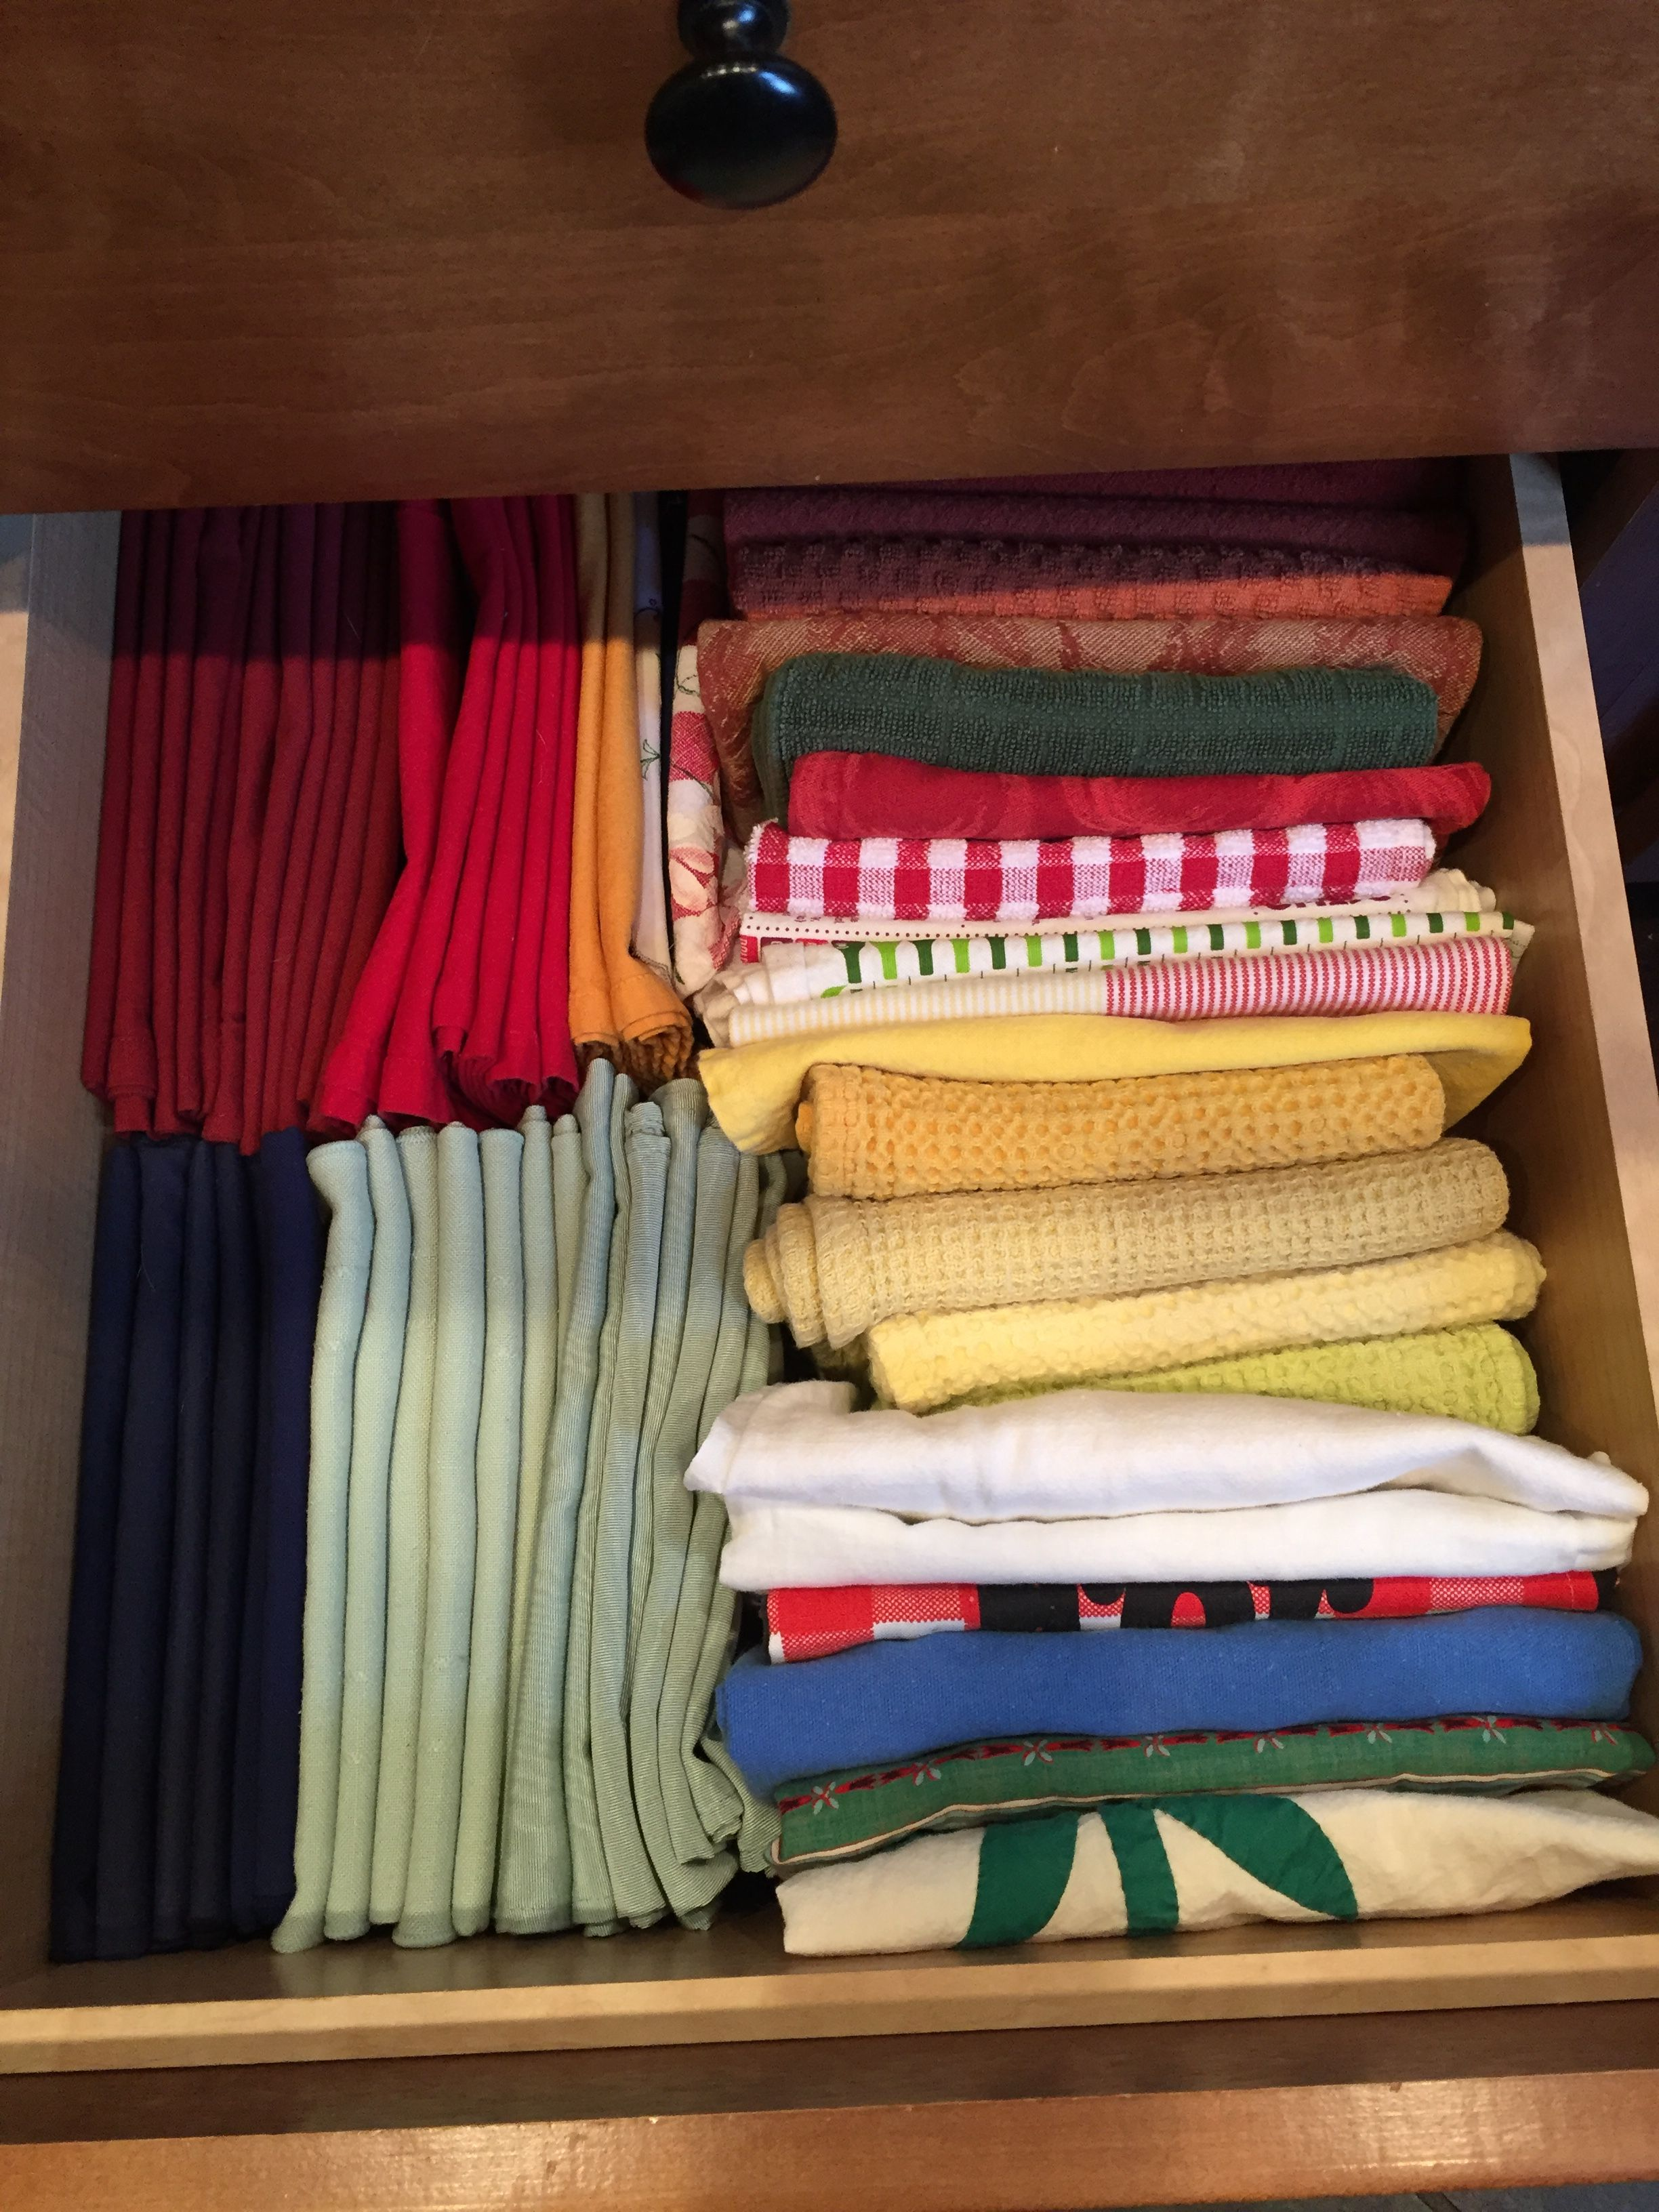 My Kitchen Towels And Cloth Napkins Organized The Konmarie Method